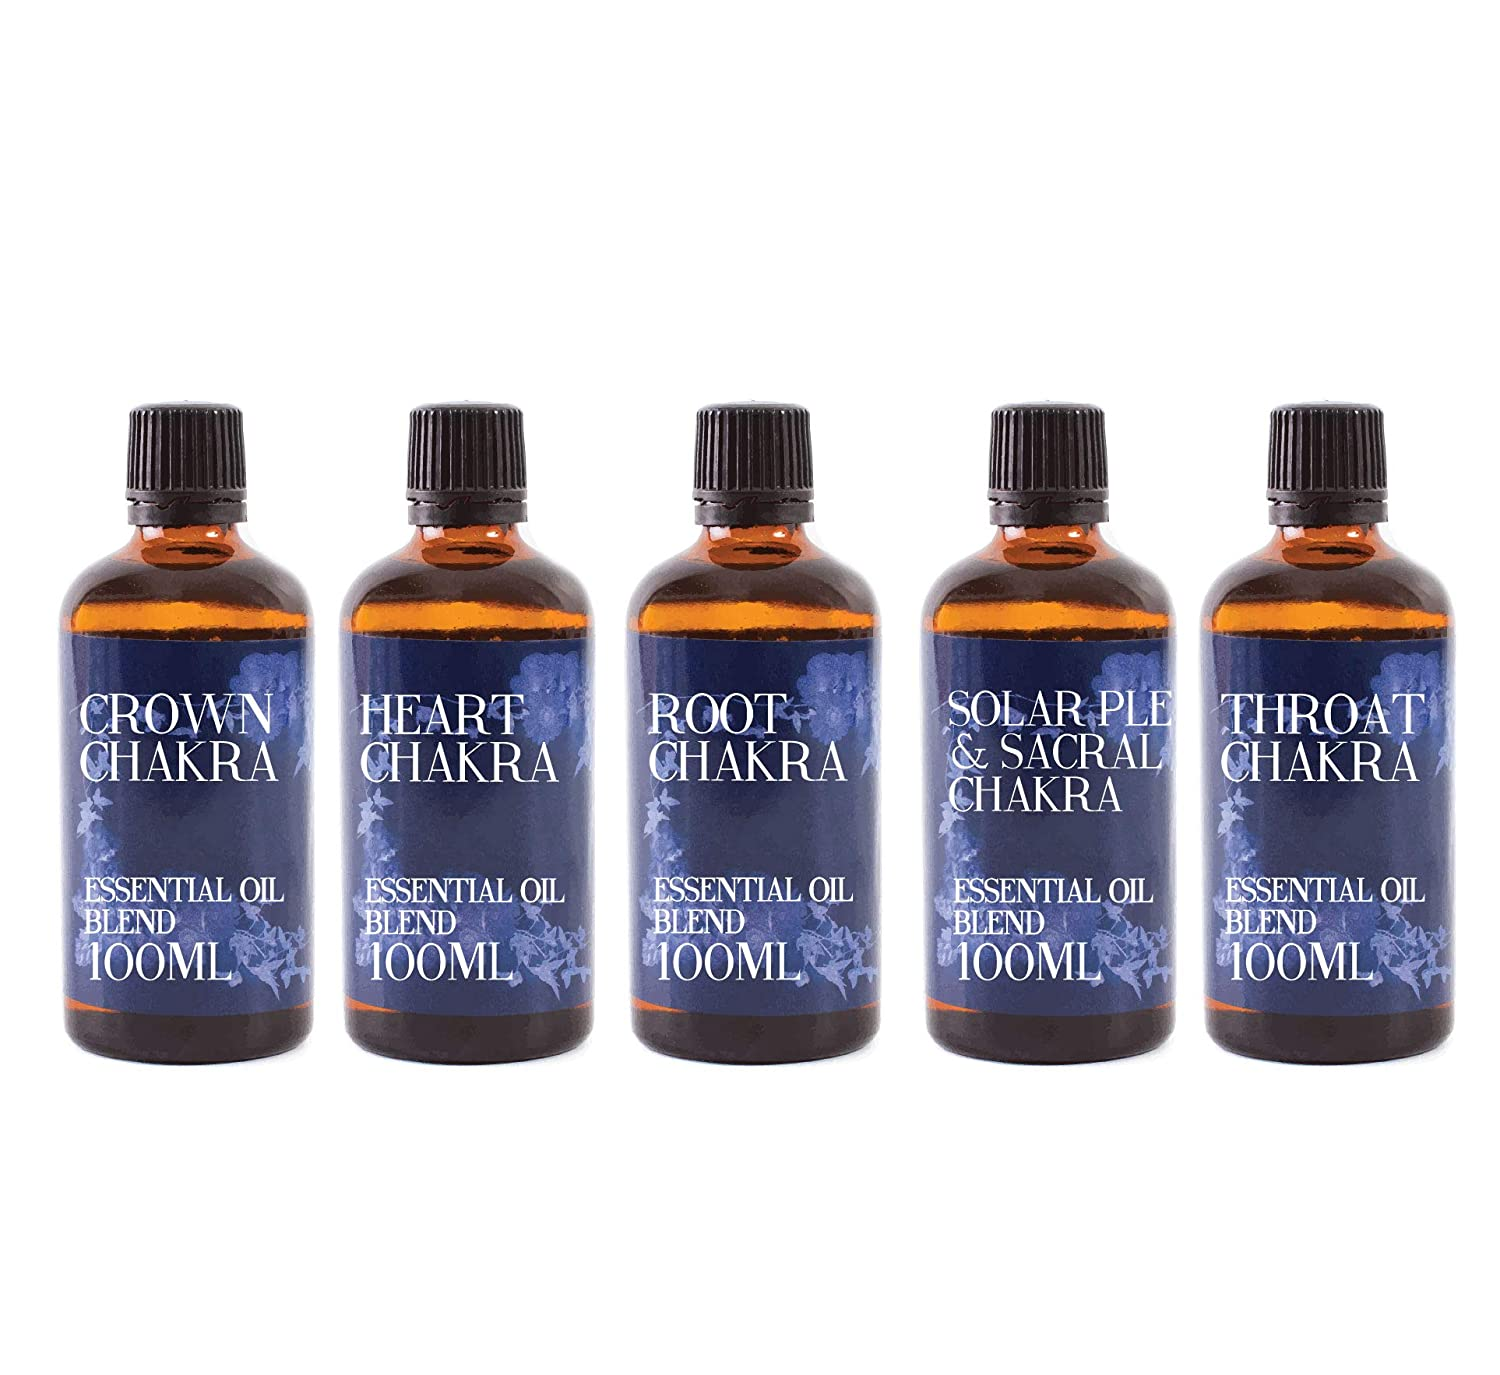 驚きの値段 Mystic Moments | | Gift Starter Pack of - 5 x Pack 100ml - Chakra - Essential Oil Blends B07J2MG8N4, アイティシー工房:9cf92c7c --- a0267596.xsph.ru